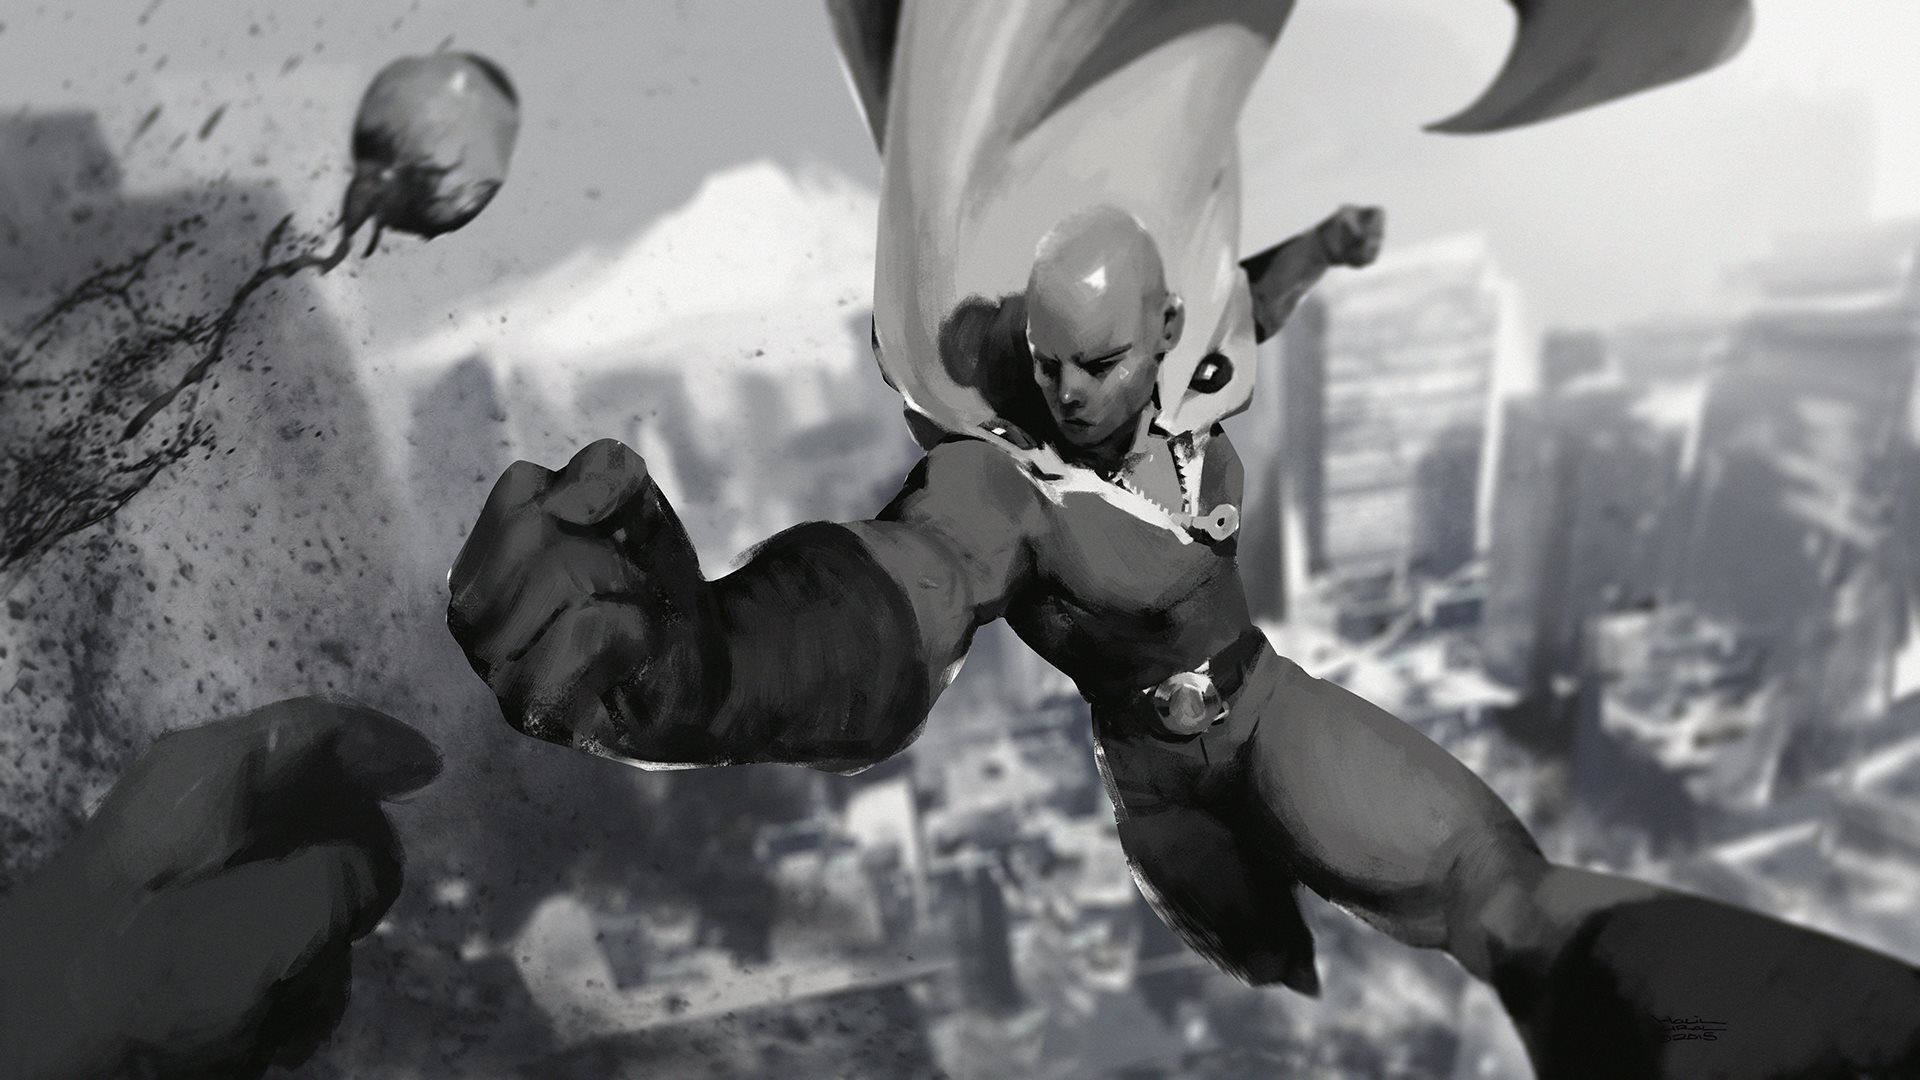 Cool Saitama 3D E Punch Man HD Wallpaper